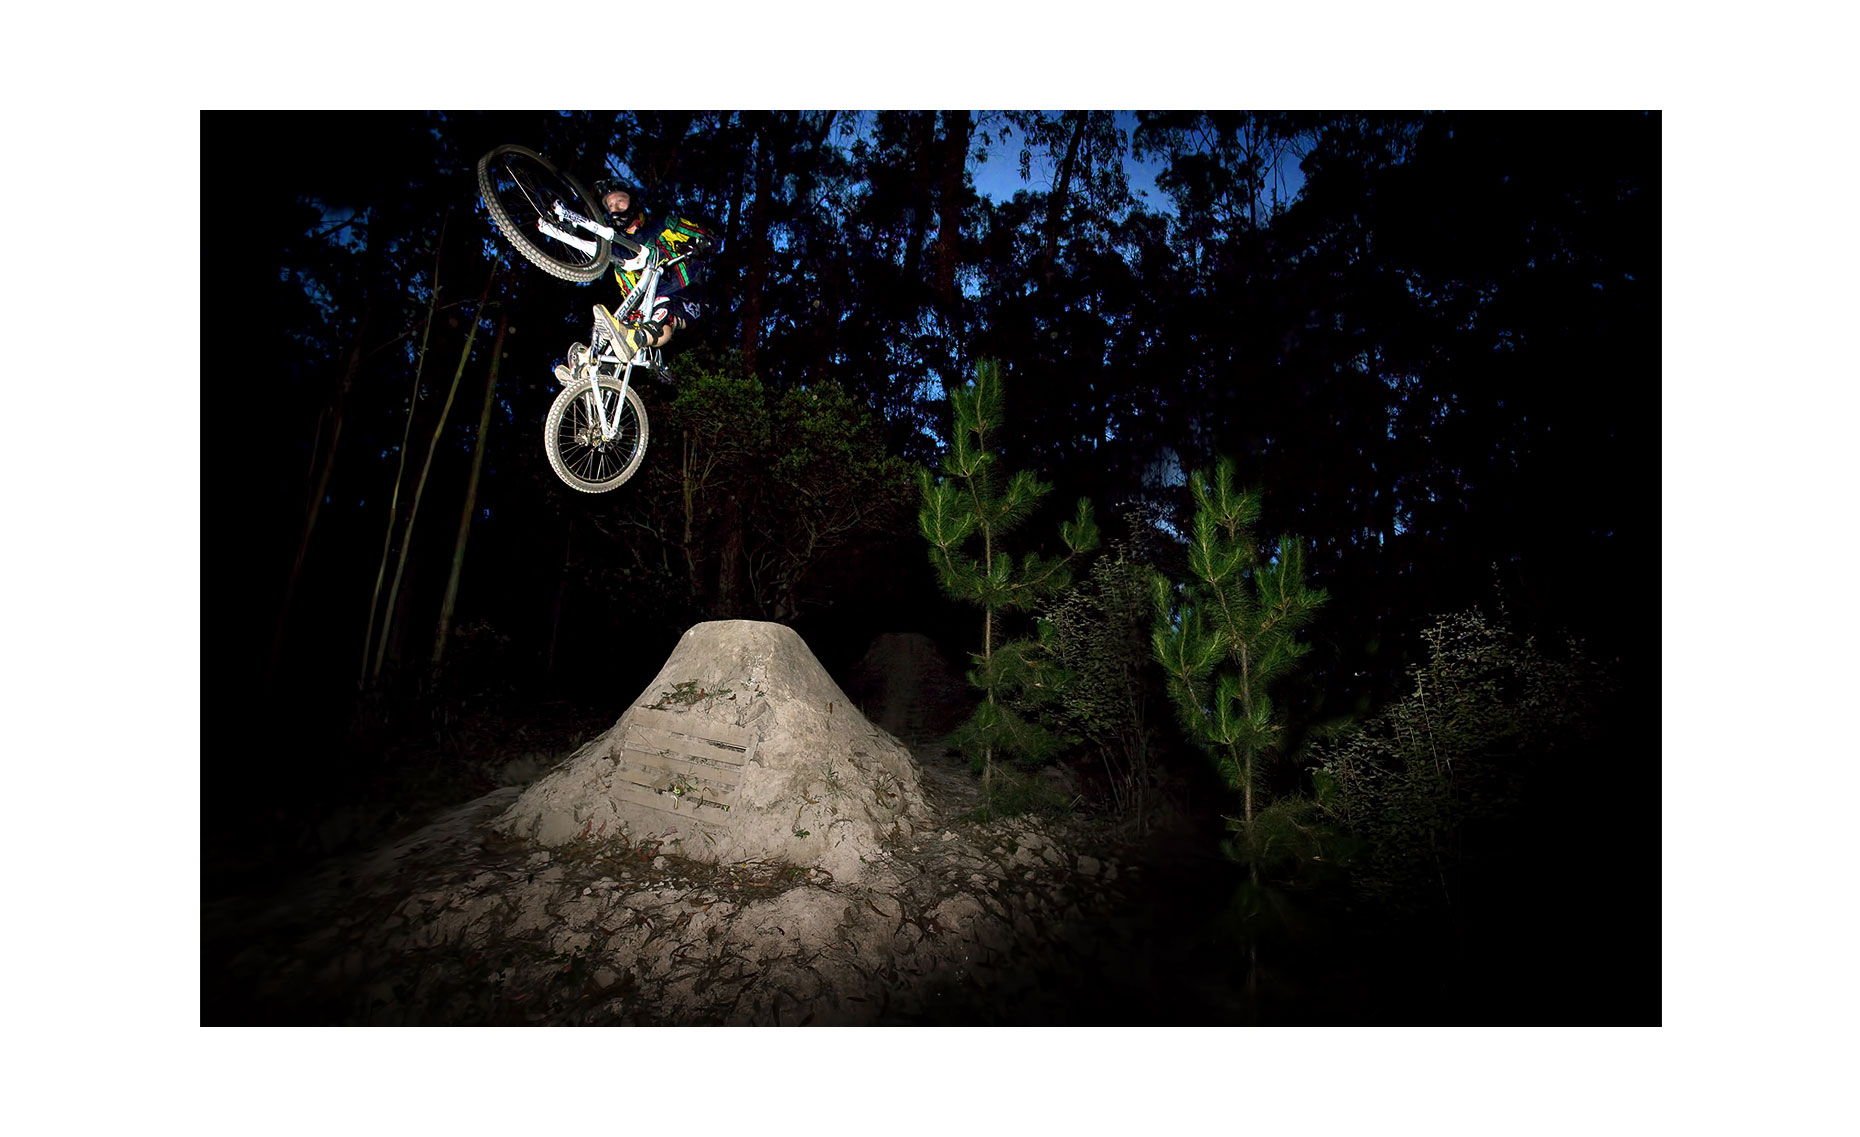 Freeride Mountain Biking | Neil Fraser Photography | Neil Fraser Photographer